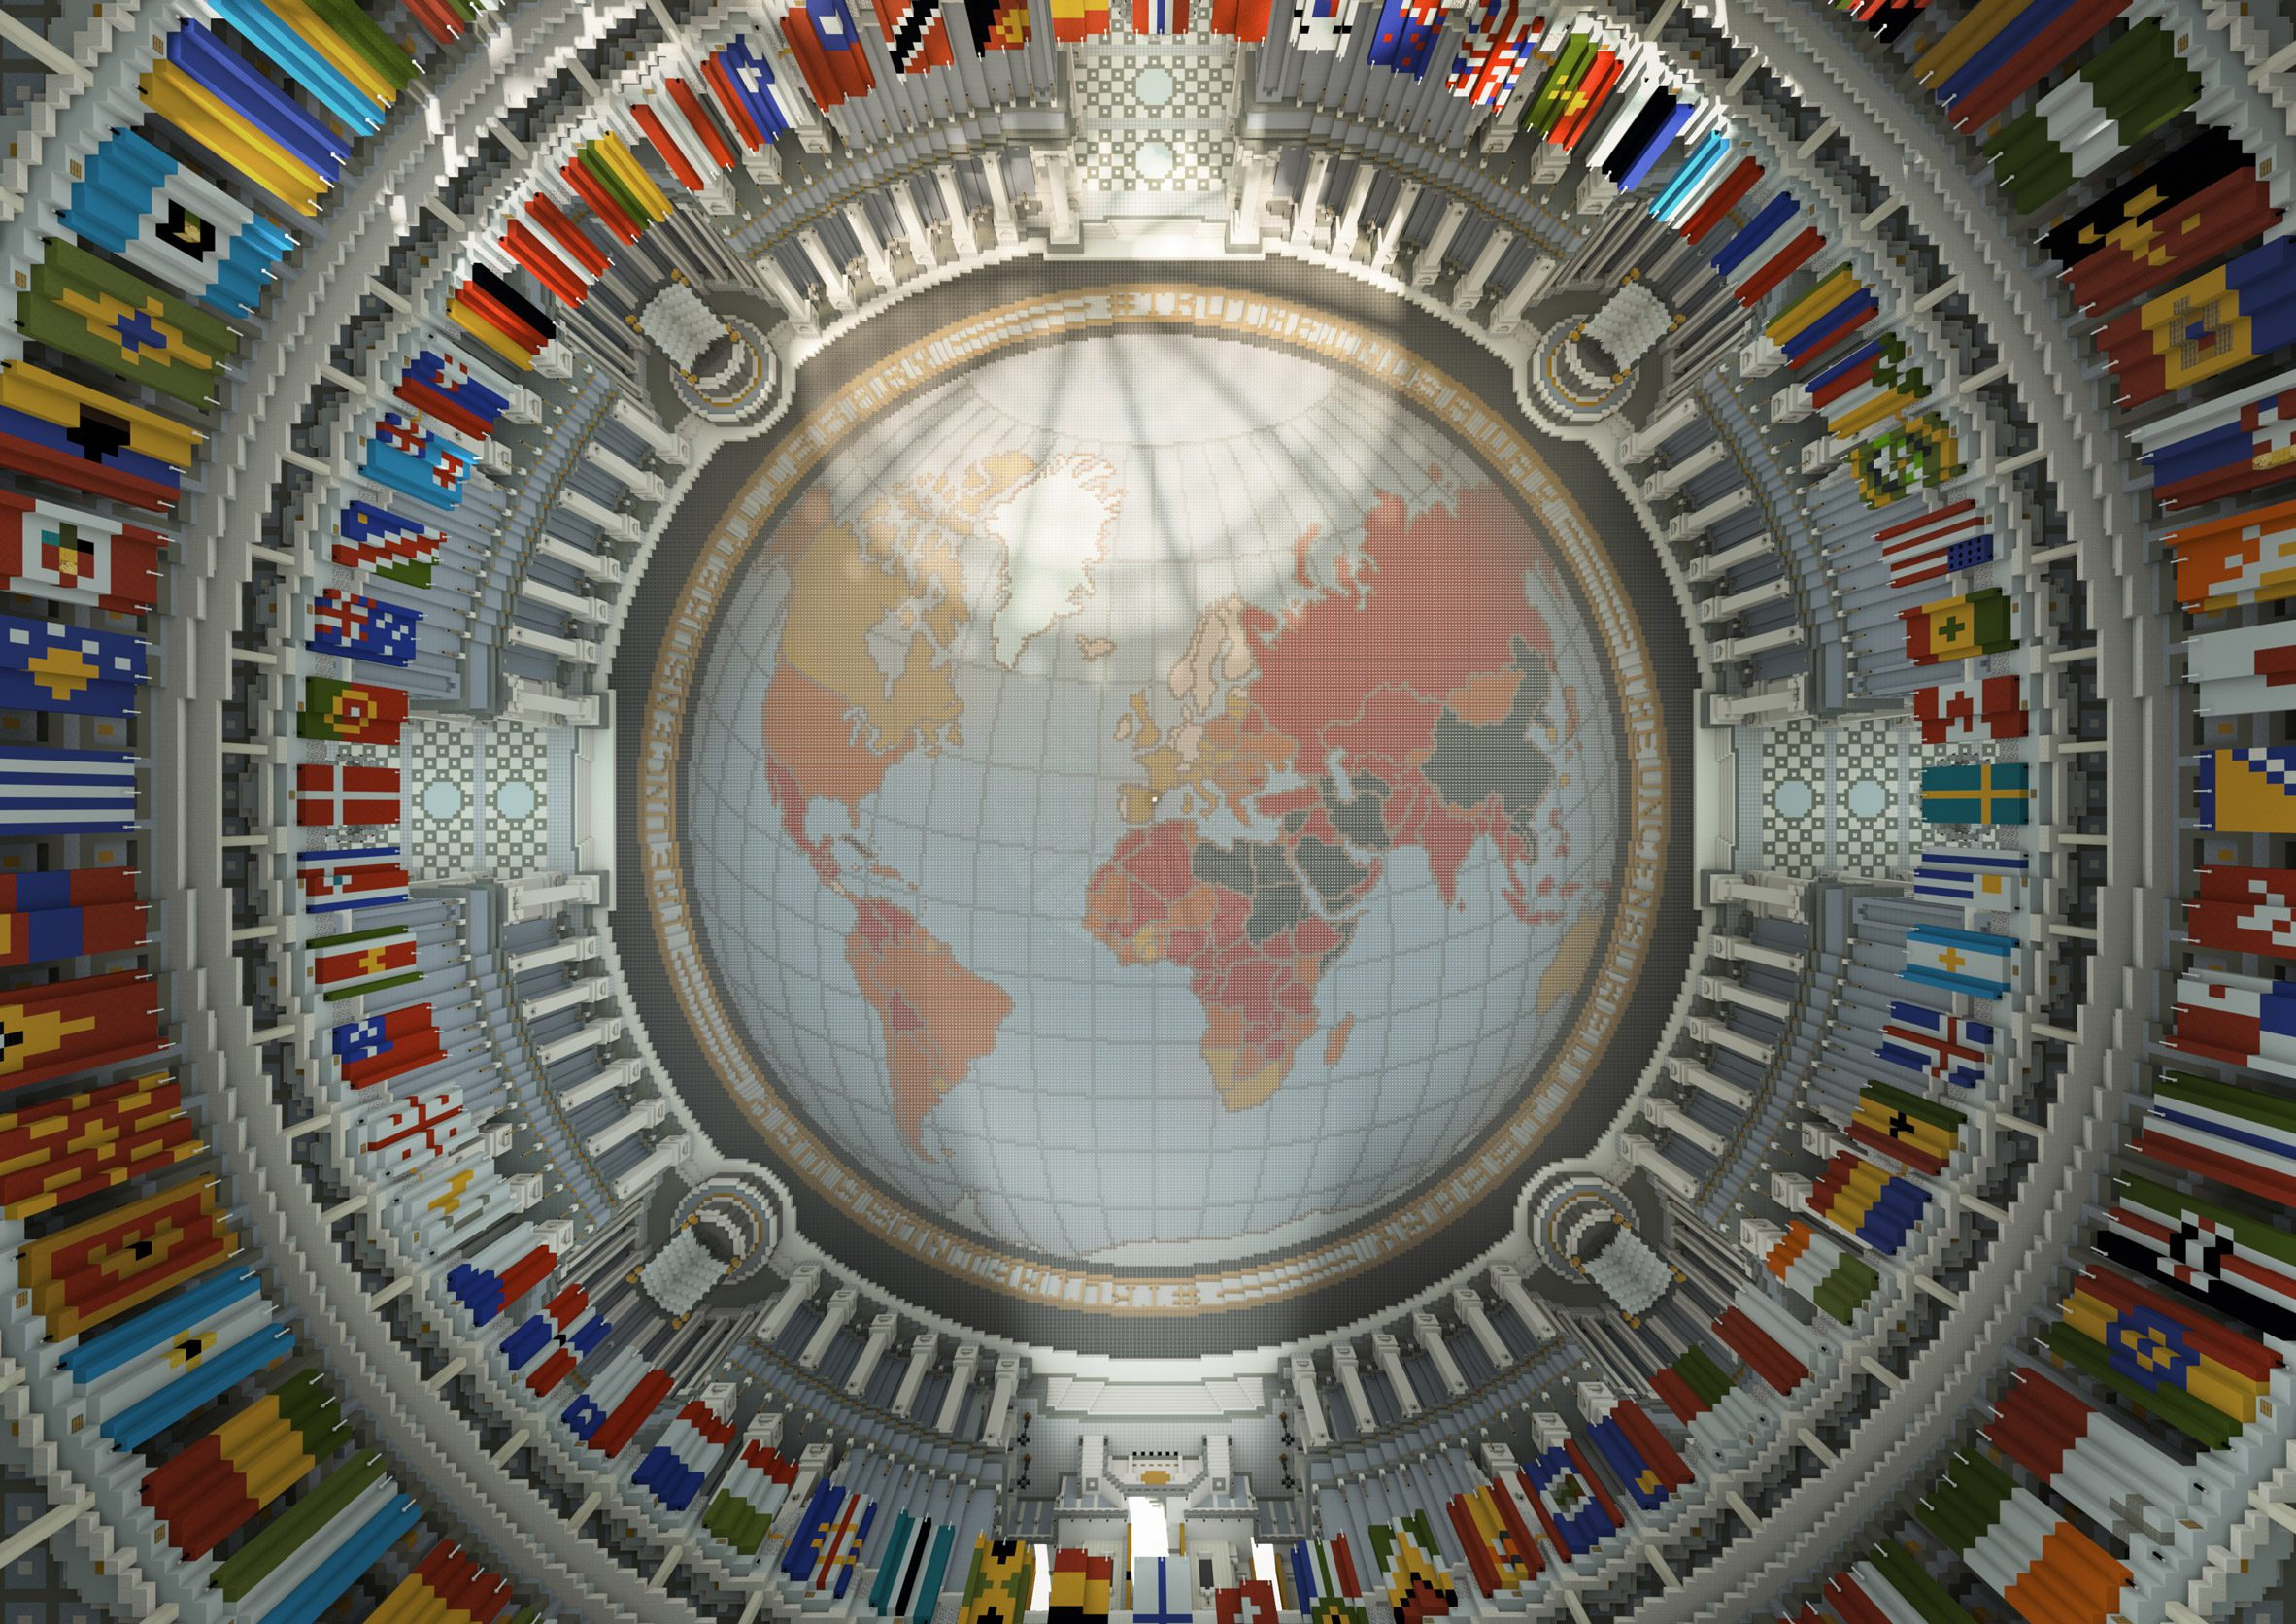 An map of the earth on a virtual library ceiling